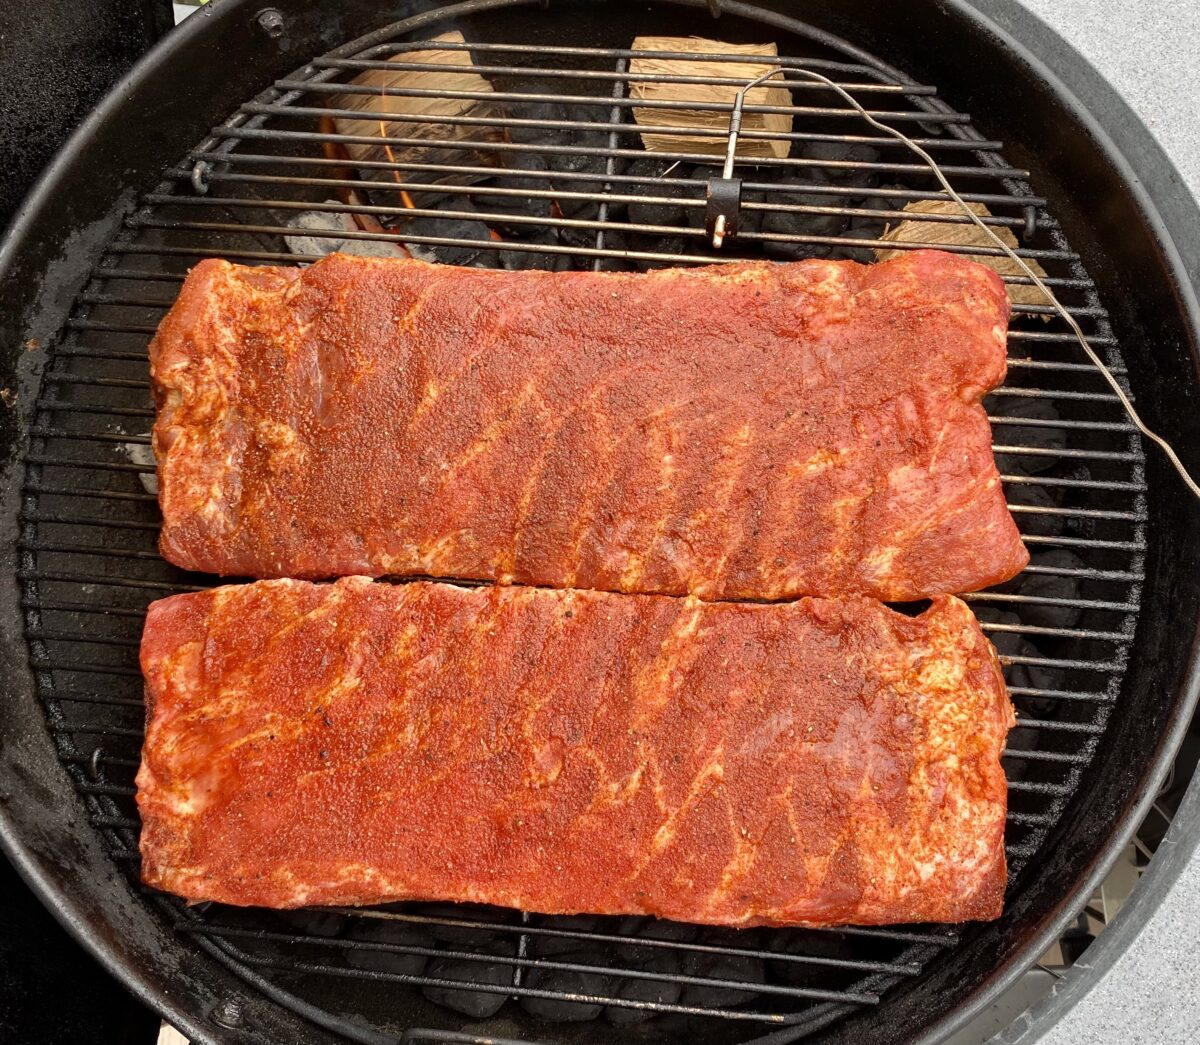 Overhead view showing where to position two racks St Louis spare ribs  that are to be smoked on a charcoal grill.